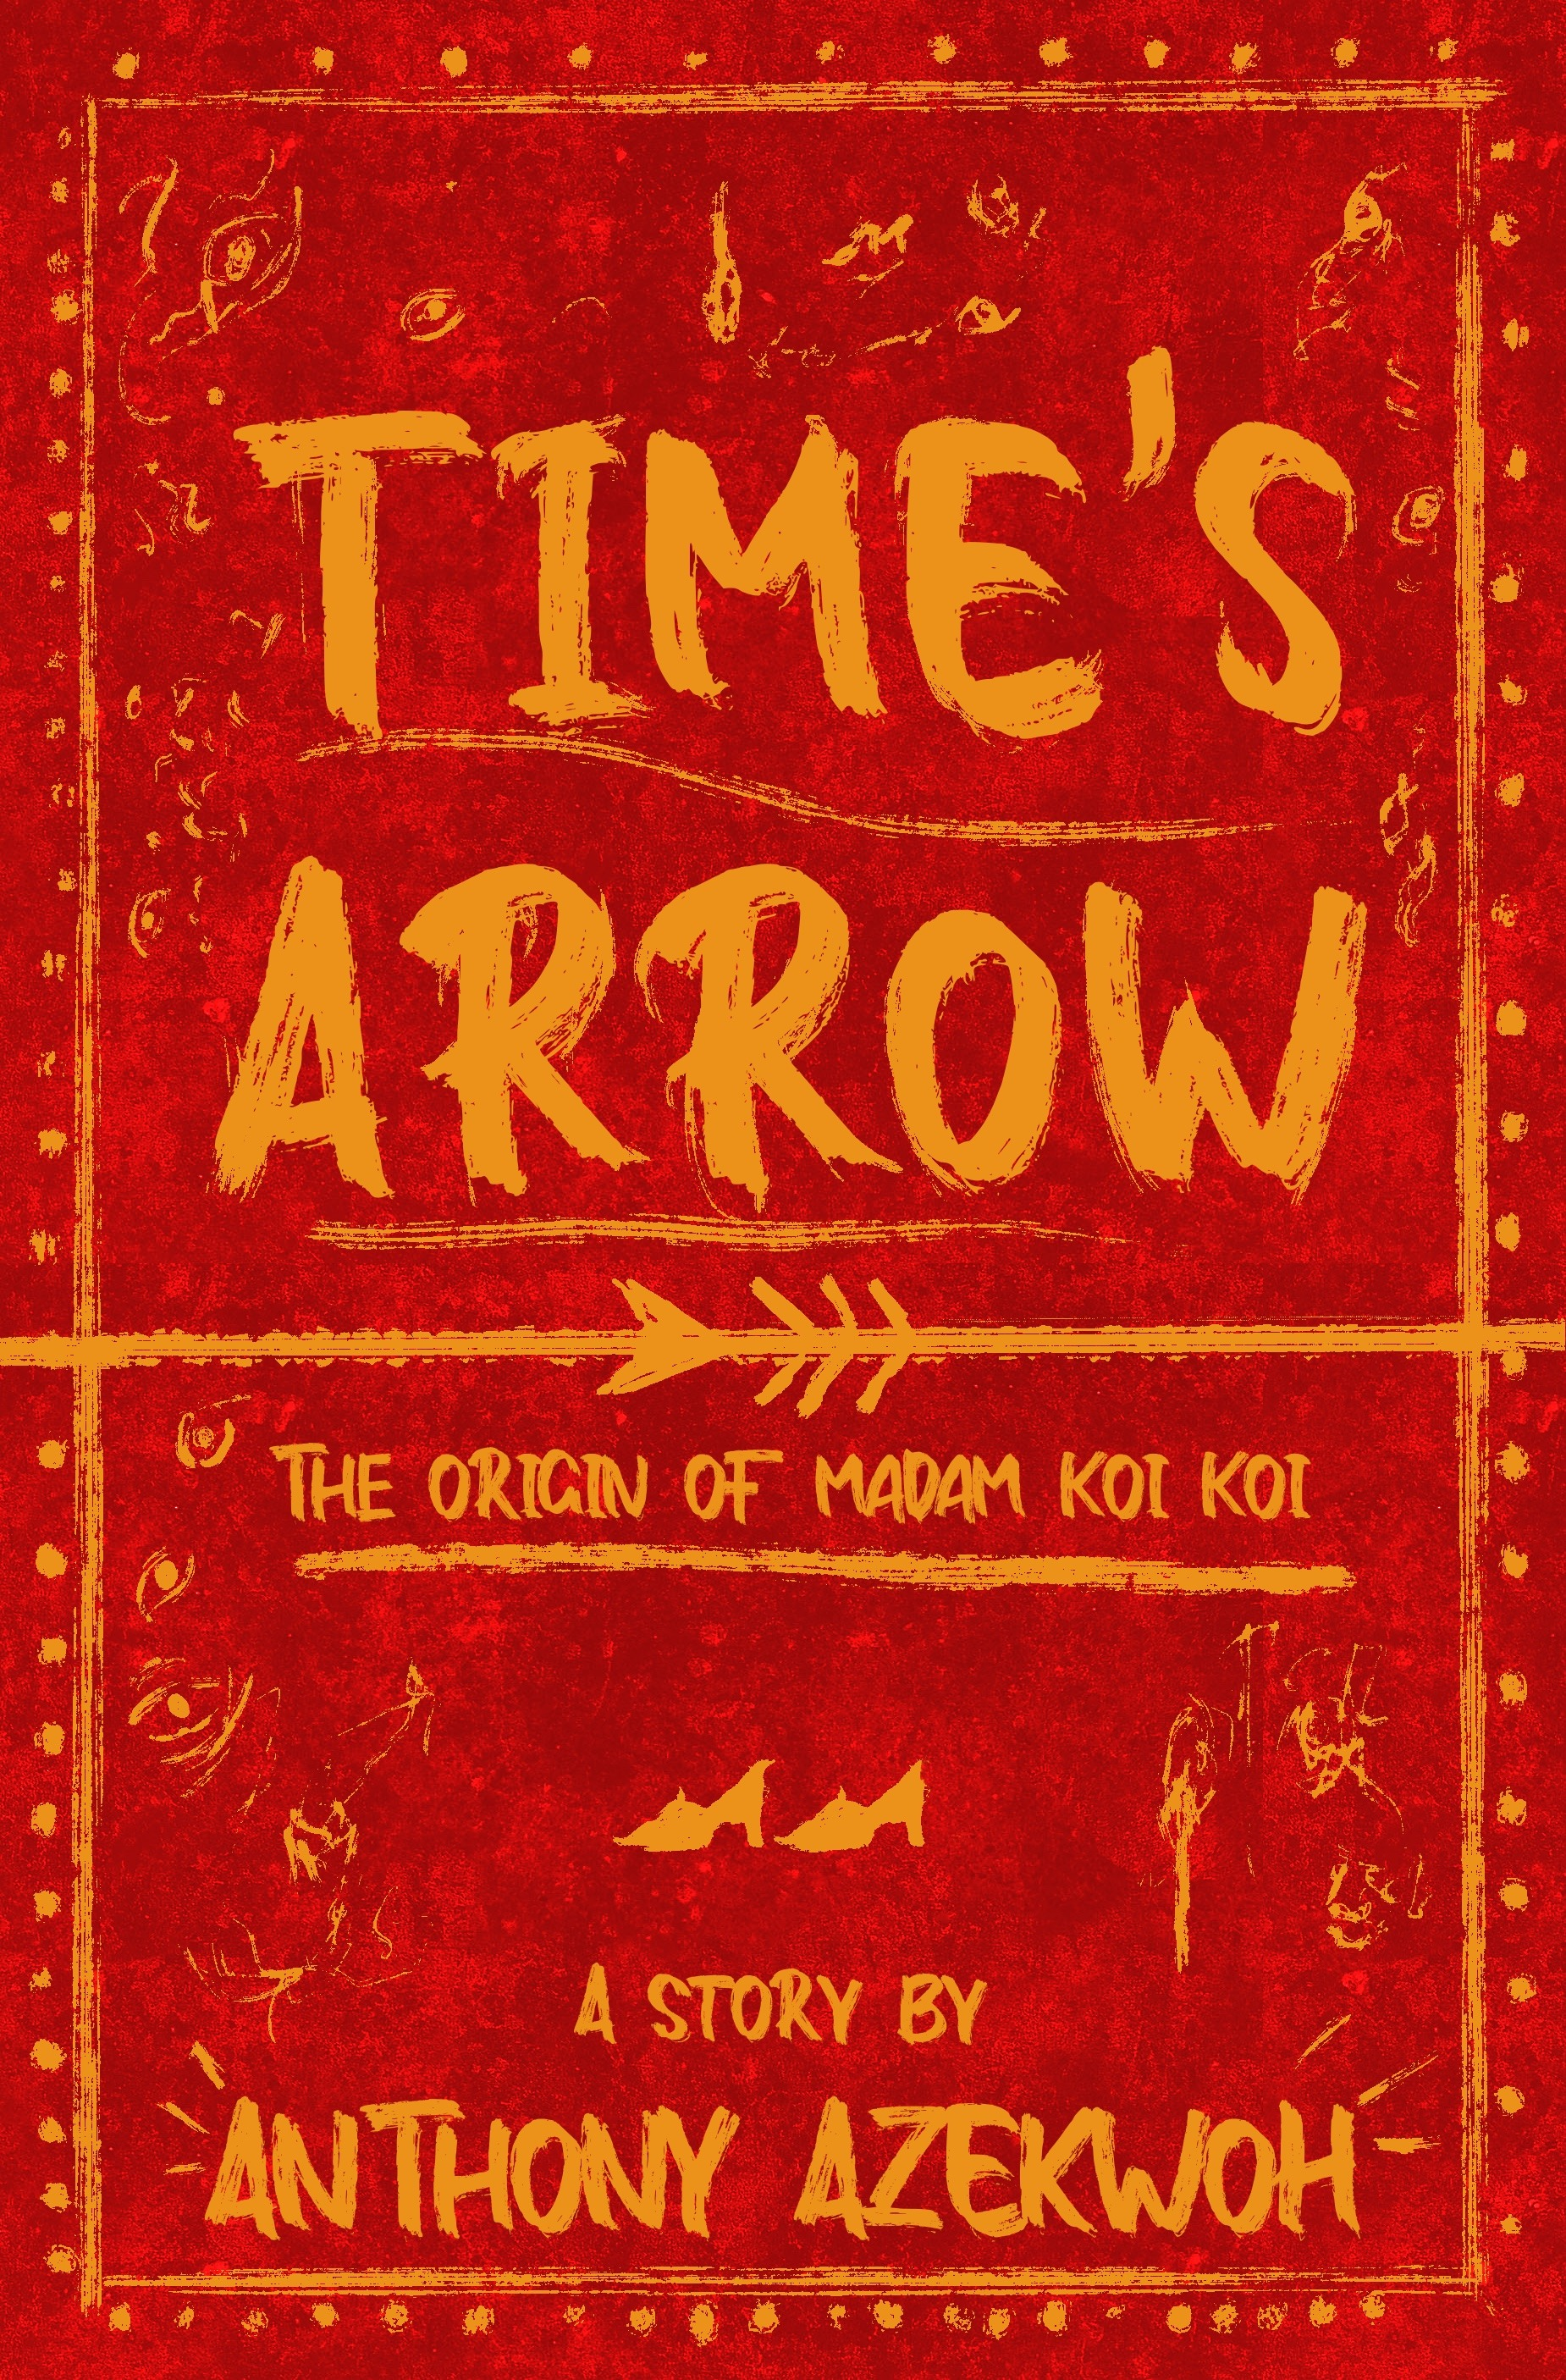 Time's Arrow: The Origin of Madam Koi Koi